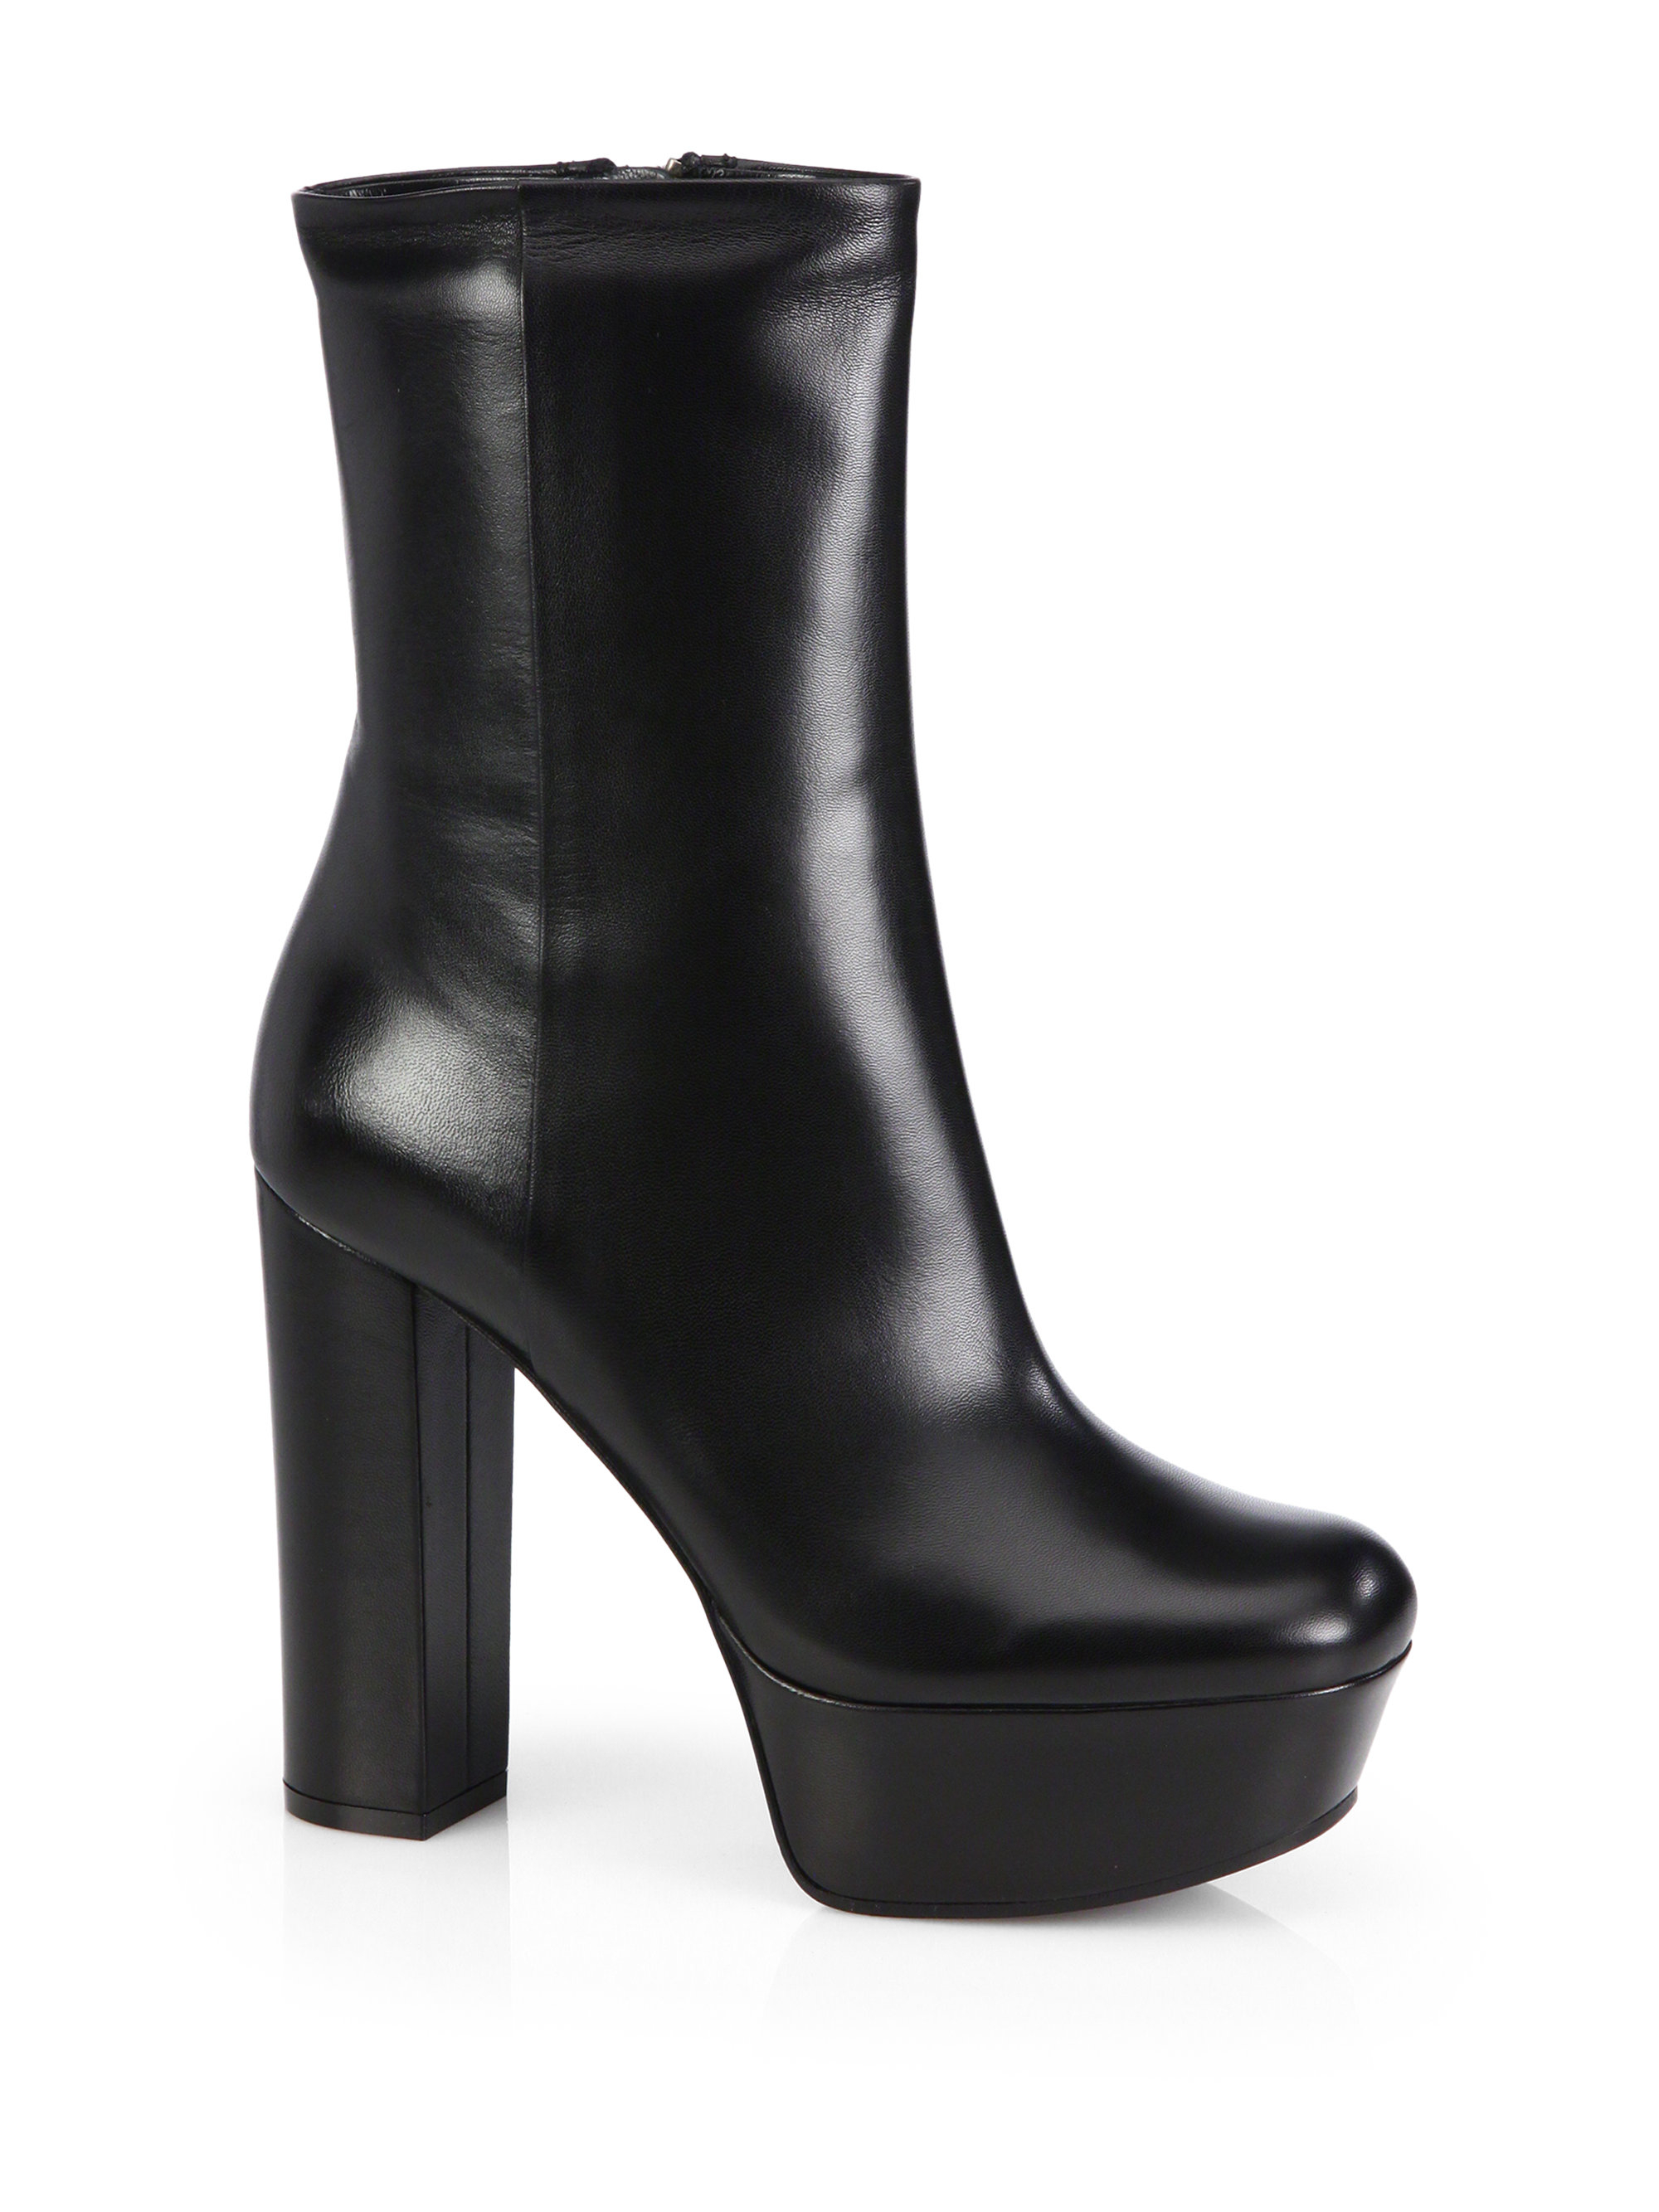 b628dcdb32c Ankle boots. From short boots with wedge heels ...